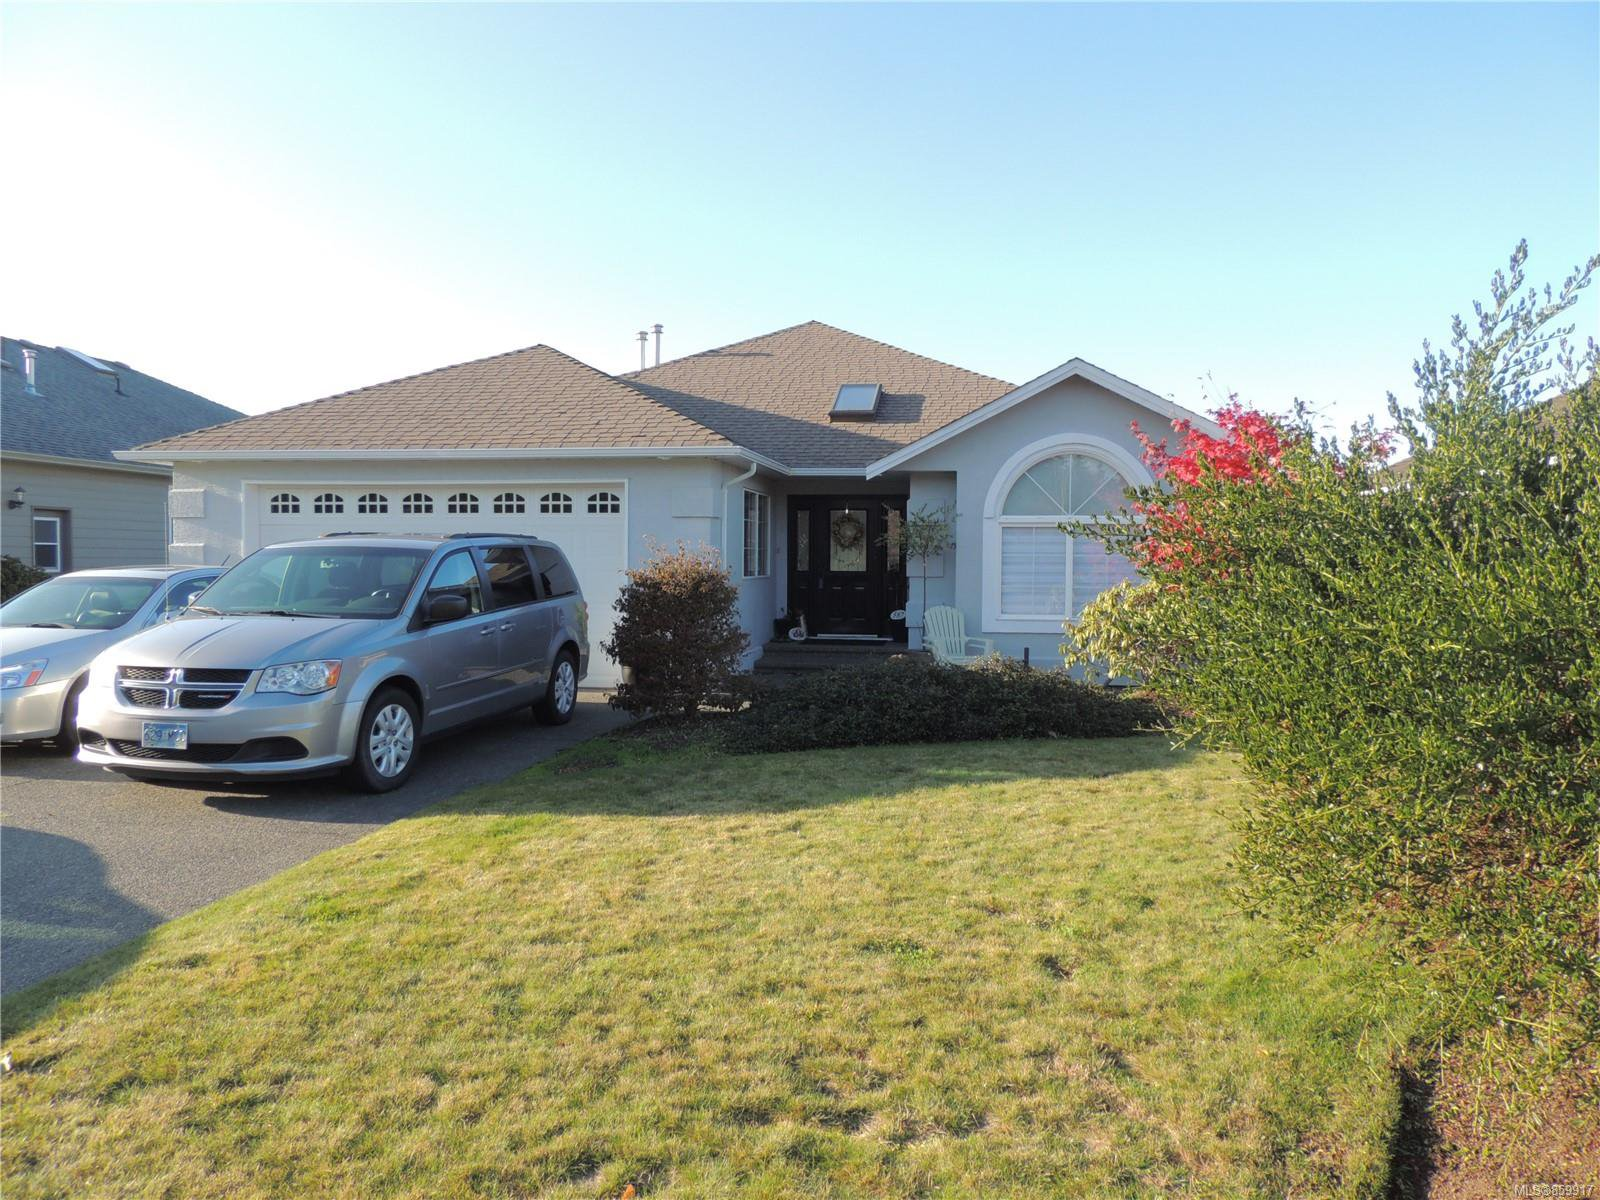 Main Photo: 587 Lowry's Rd in : PQ French Creek House for sale (Parksville/Qualicum)  : MLS®# 859917